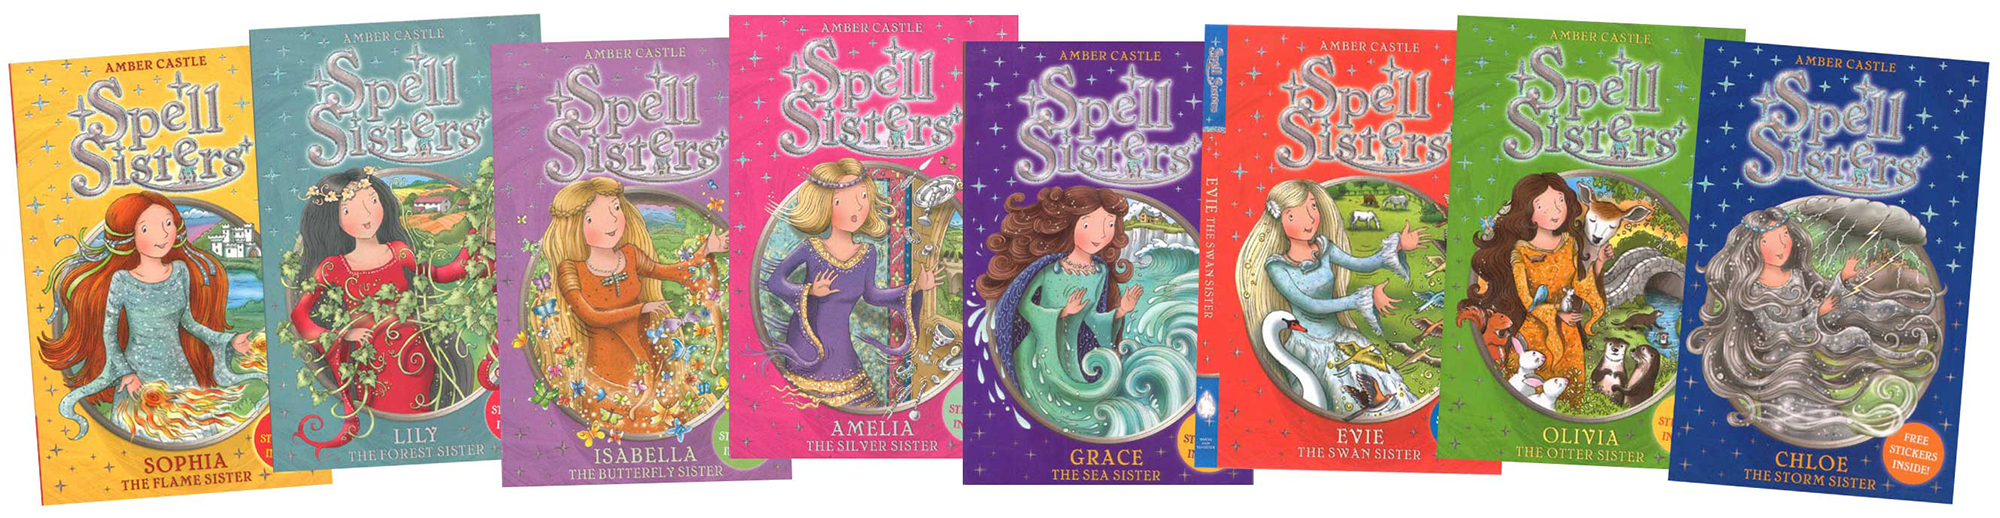 8-spell-sisters-books-